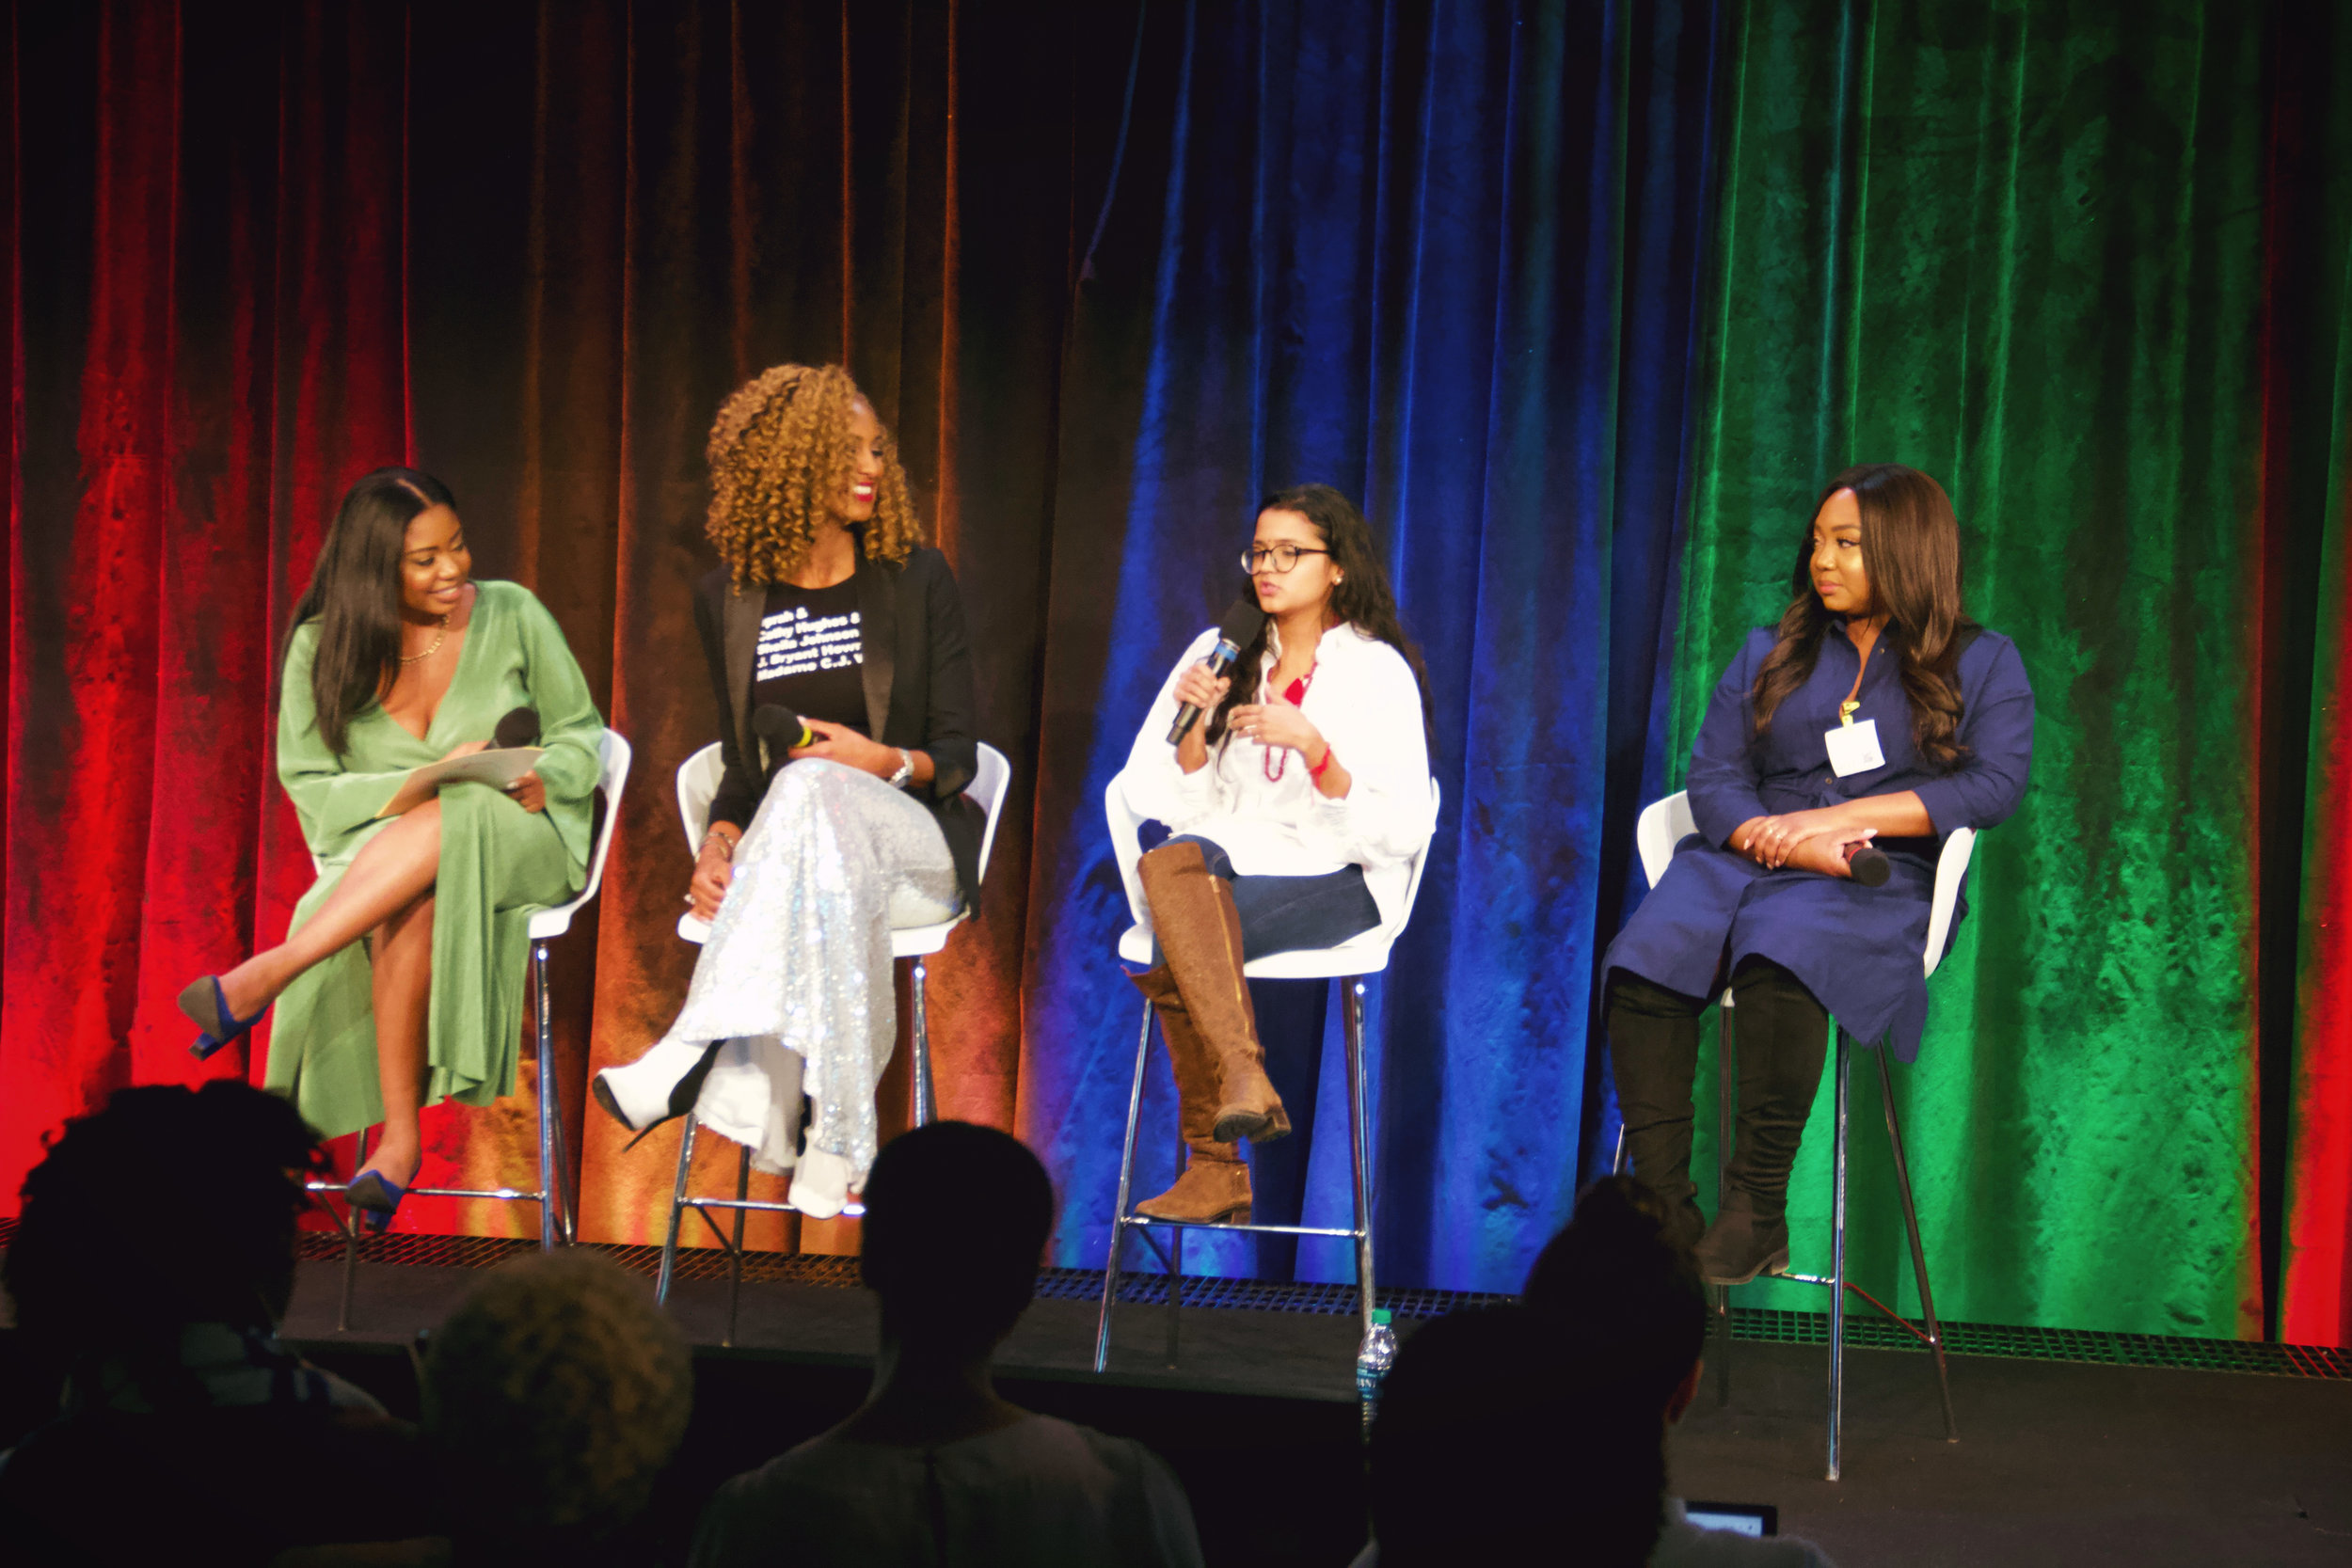 Google x Her Agenda: Funding Options For Your Business     February 13, 2019  Rhonesha Byng- Moderator Founder or HerAgenda  Lauren Maillian- Investor, Brand Strategist, Founder LMB Group  Pauleanna Reid- Journalist & Celebrity Ghostwriter